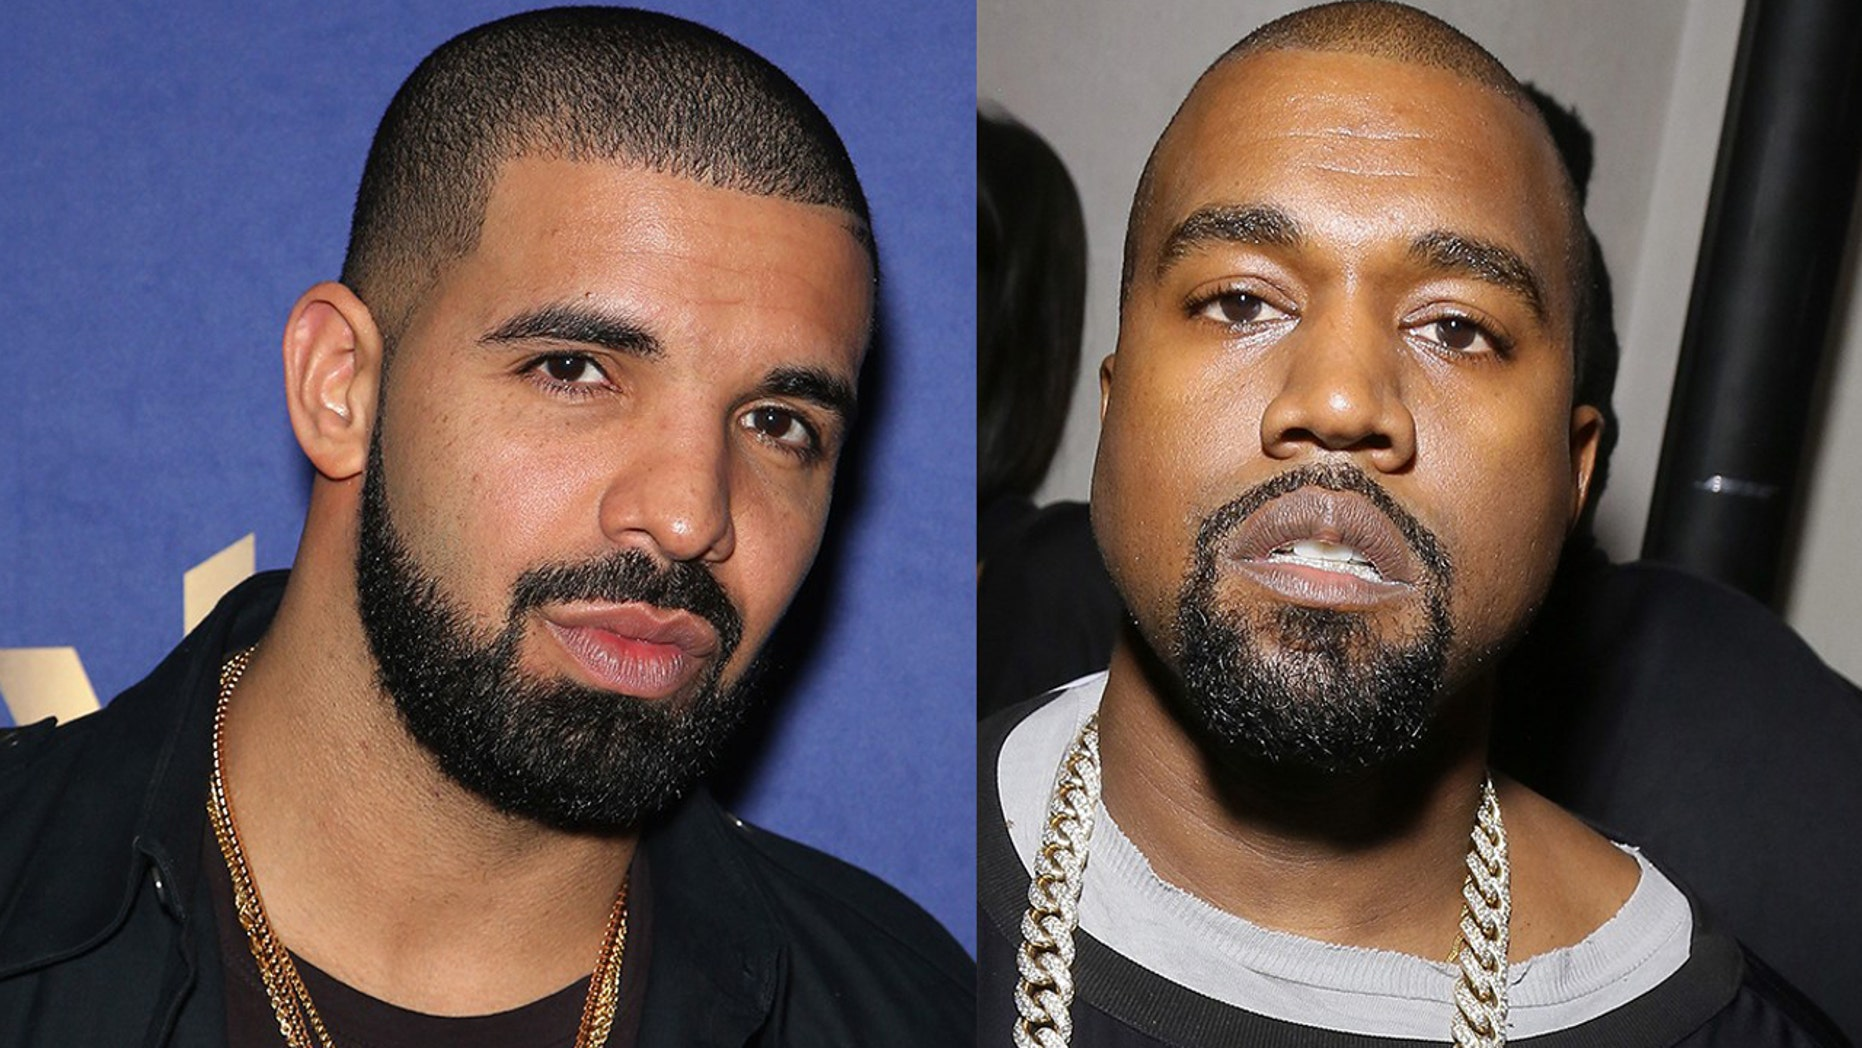 Drake and Kanye West have been feuding since the summer, but rapper Pusha T defends West in the on-going rapper feud.